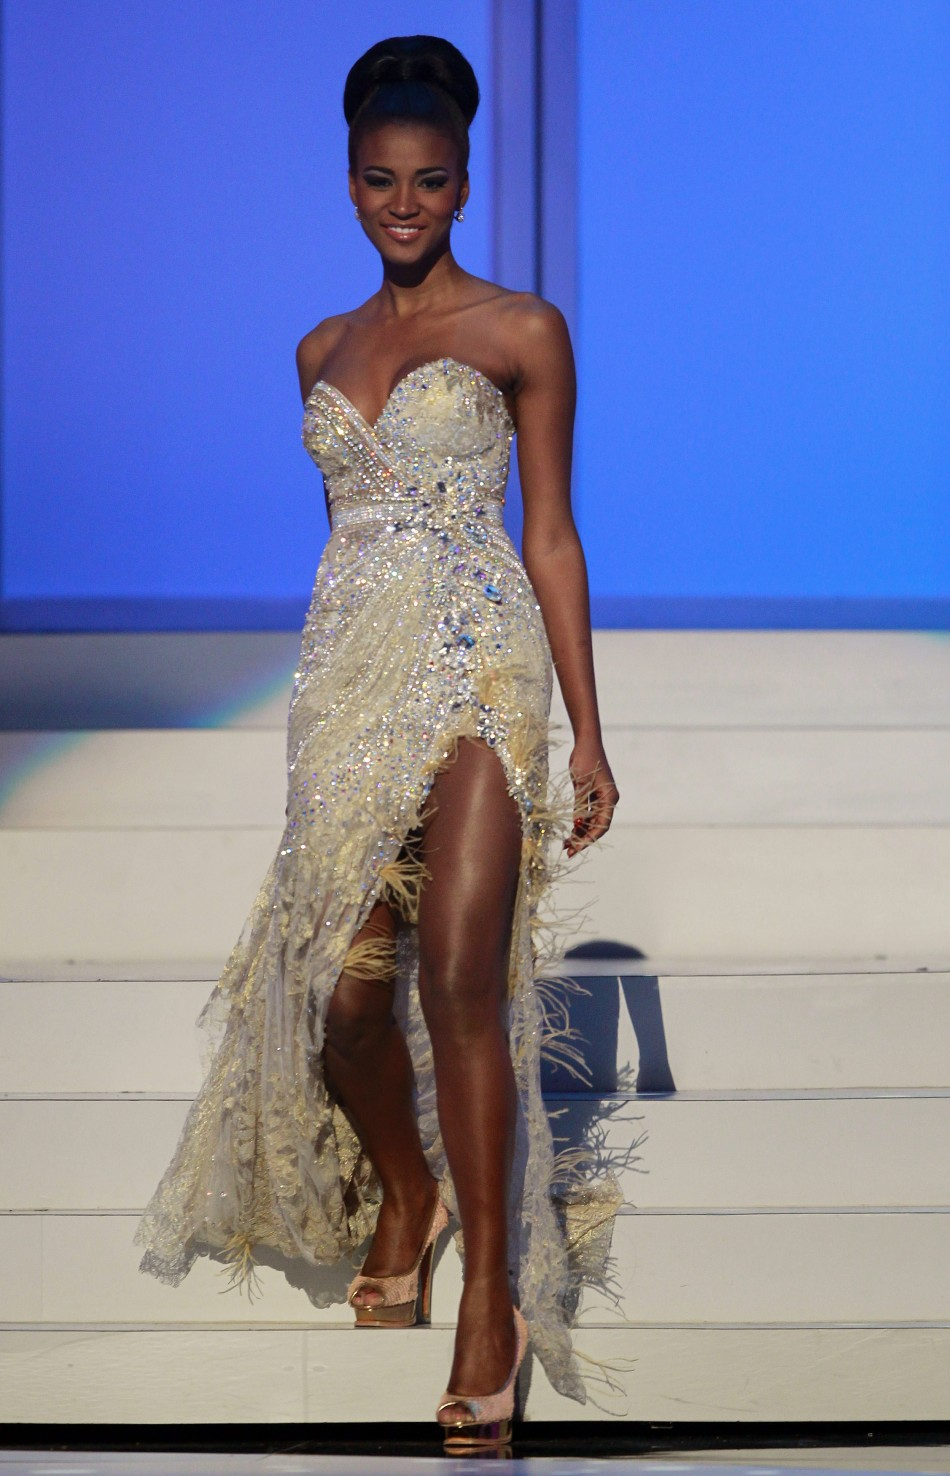 miss universe 2011 10 Leila Lopes Miss Universe 2011 Photos 